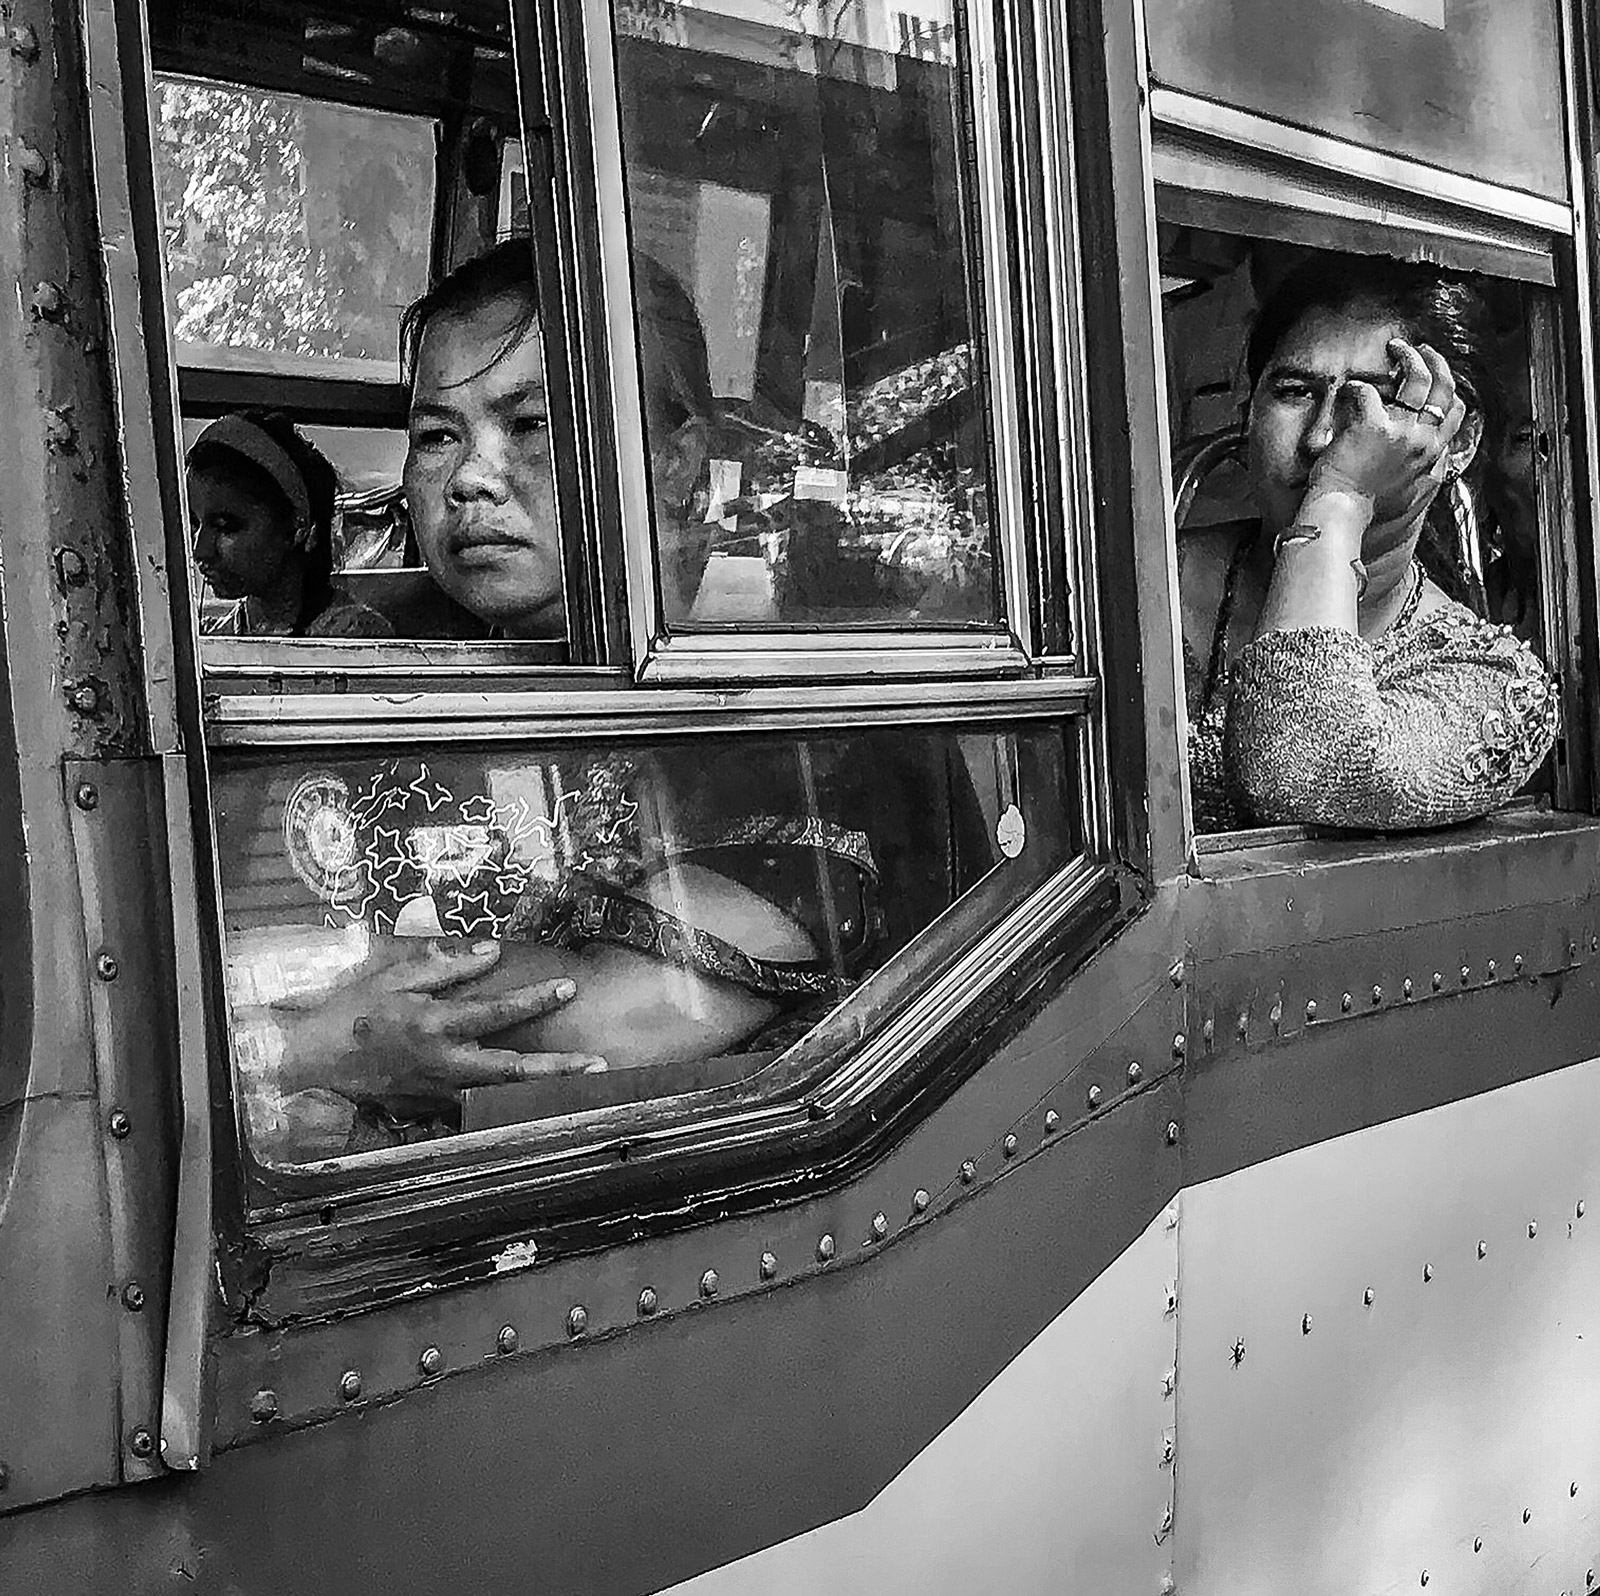 Street and Travel Photography